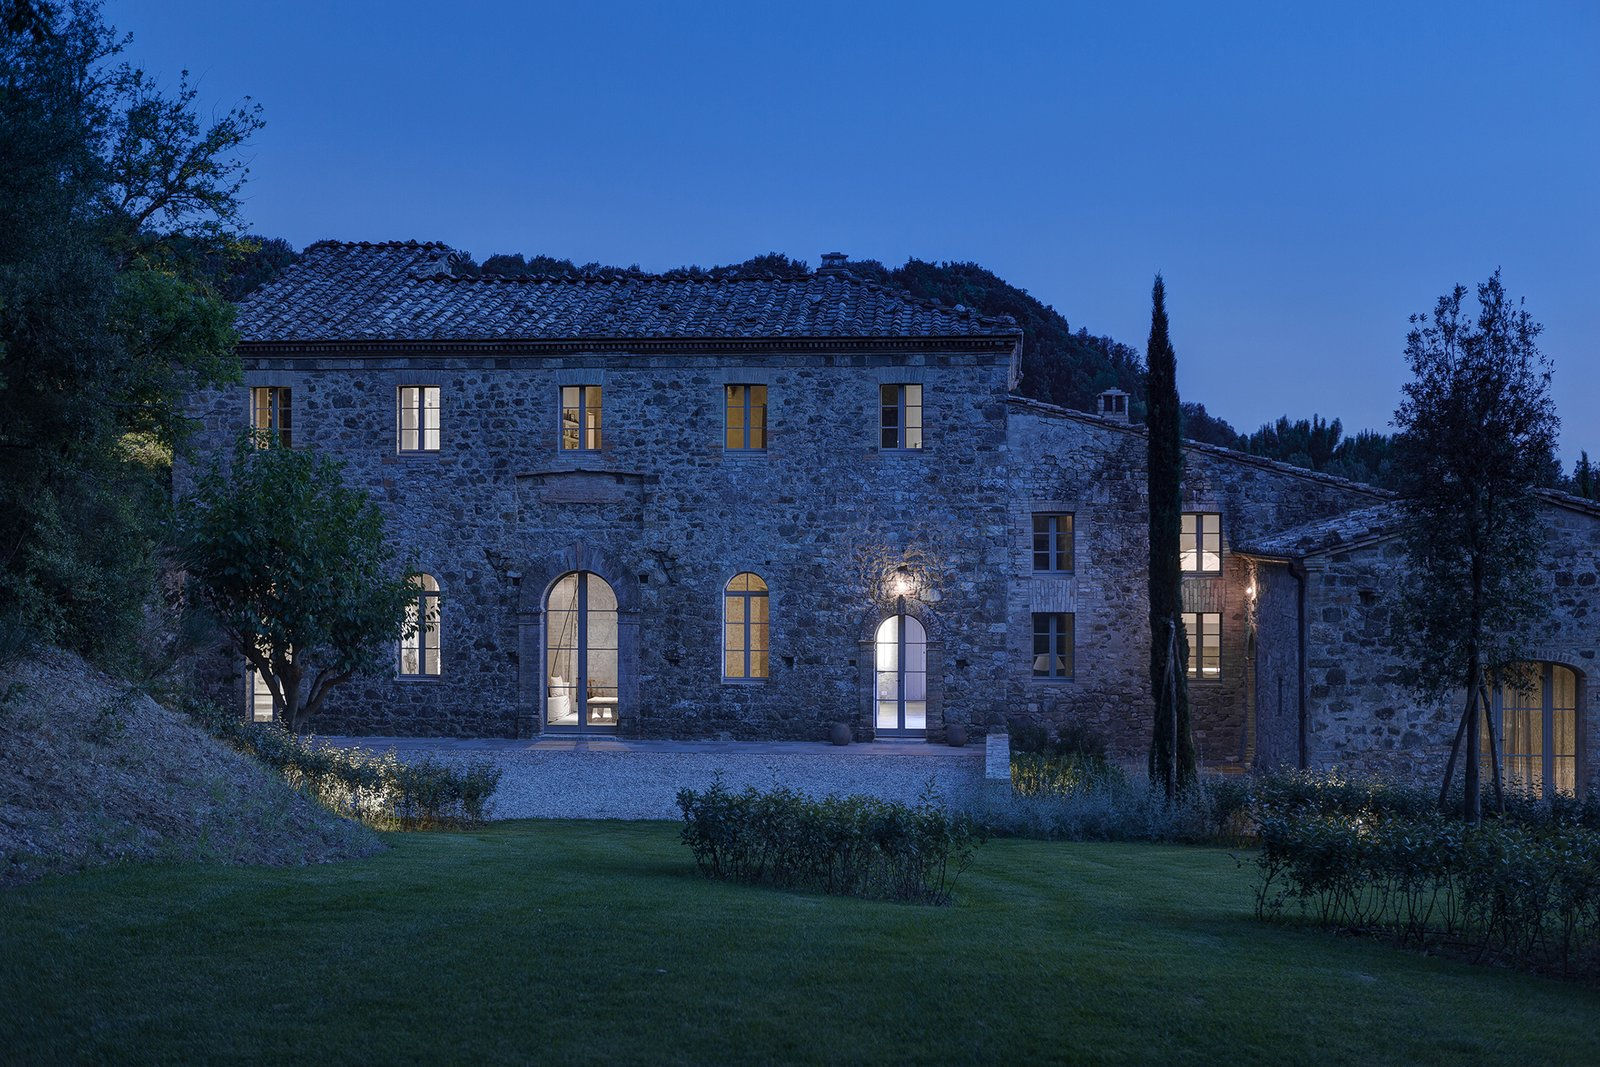 Photo 1 of 7 in A Nocturnal Marvel in Montalcino